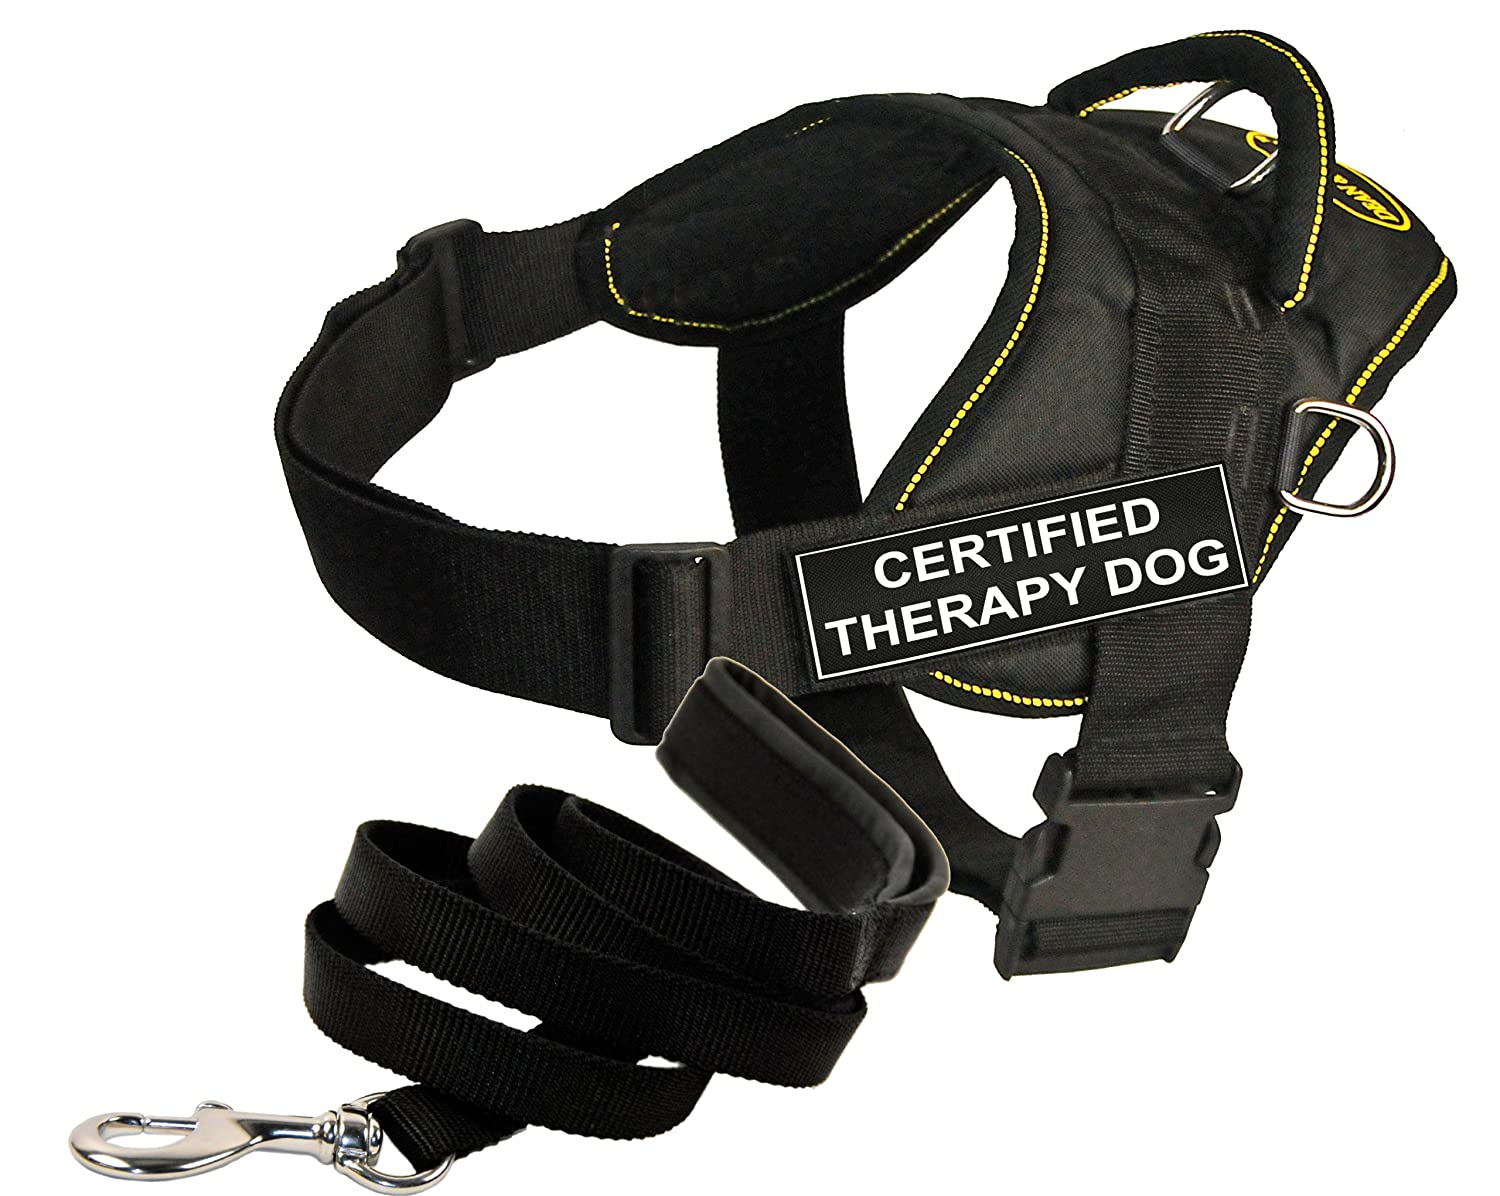 Dean and Tyler Bundle One DT Fun Works  Harness, Certified Therapy Dog, Yellow Trim, XLarge + One Padded Puppy  Leash, 6 FT Stainless Snap Black